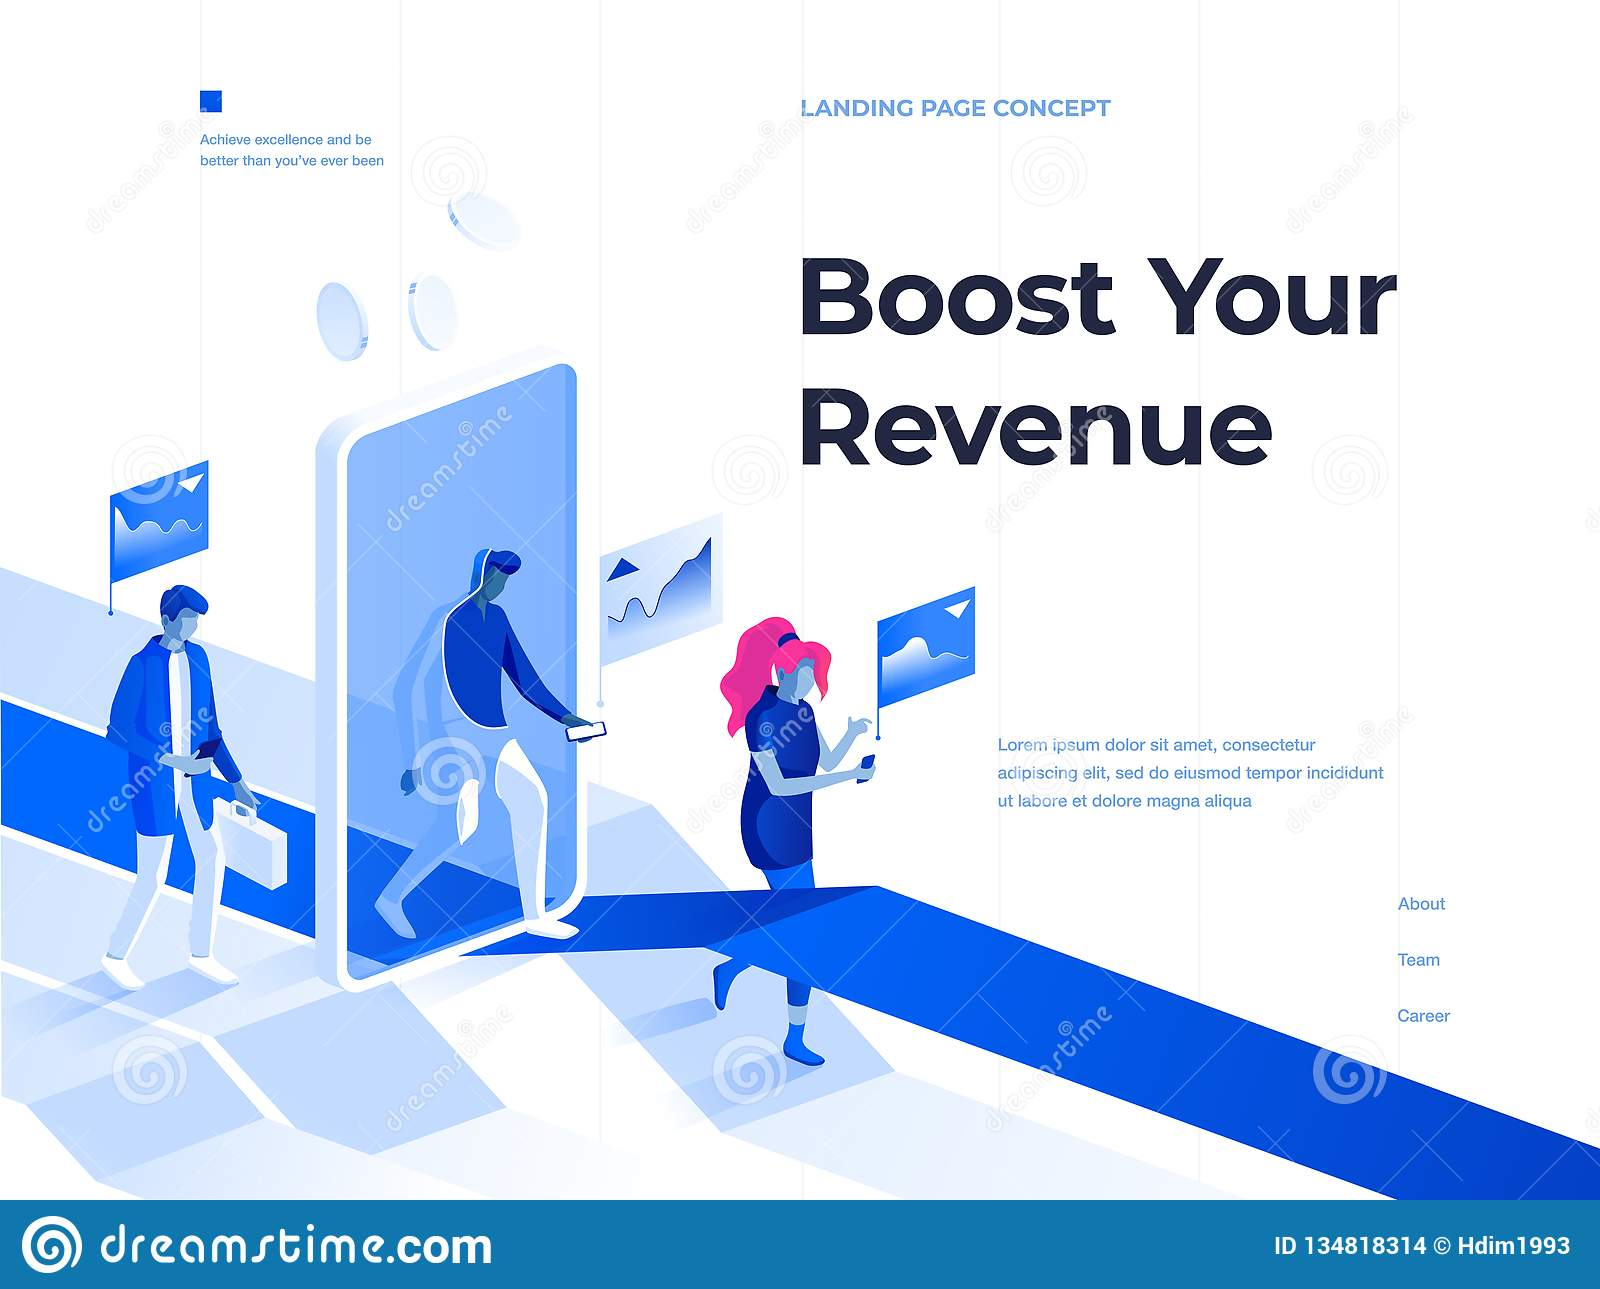 People walk with smartphones and get rewards going through a mobile application screen. 3d isometric illustration. Landing page.